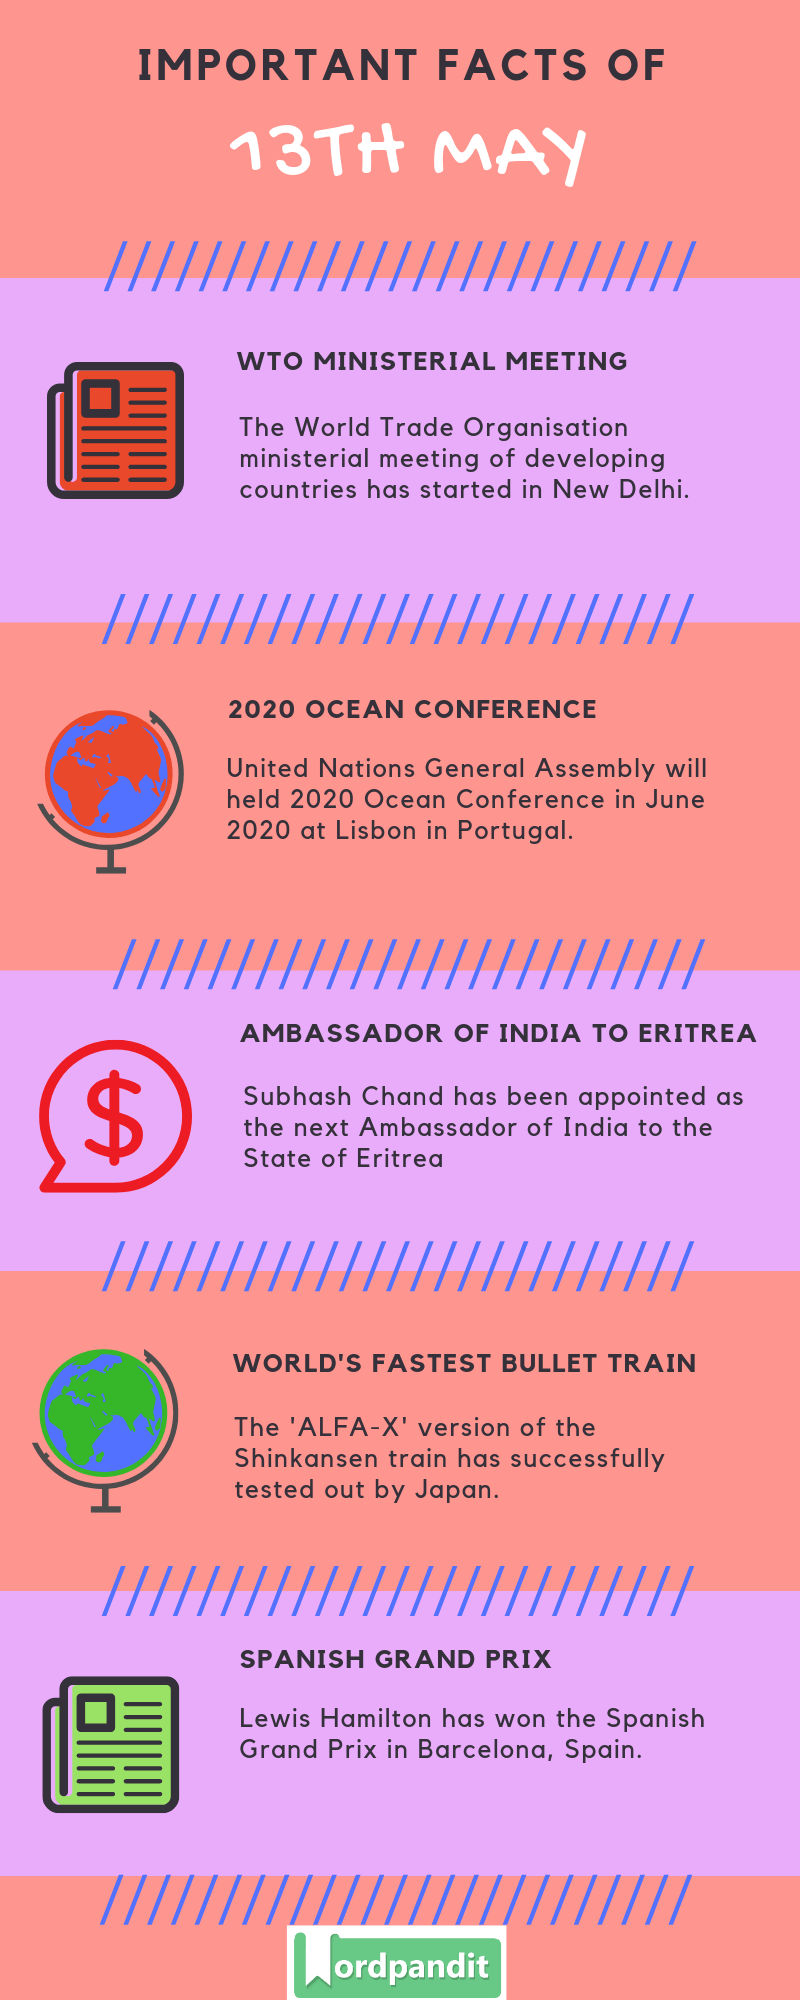 Daily Current Affairs 13 May 2019 Current Affairs Quiz 13 May 2019 Current Affairs Infographic